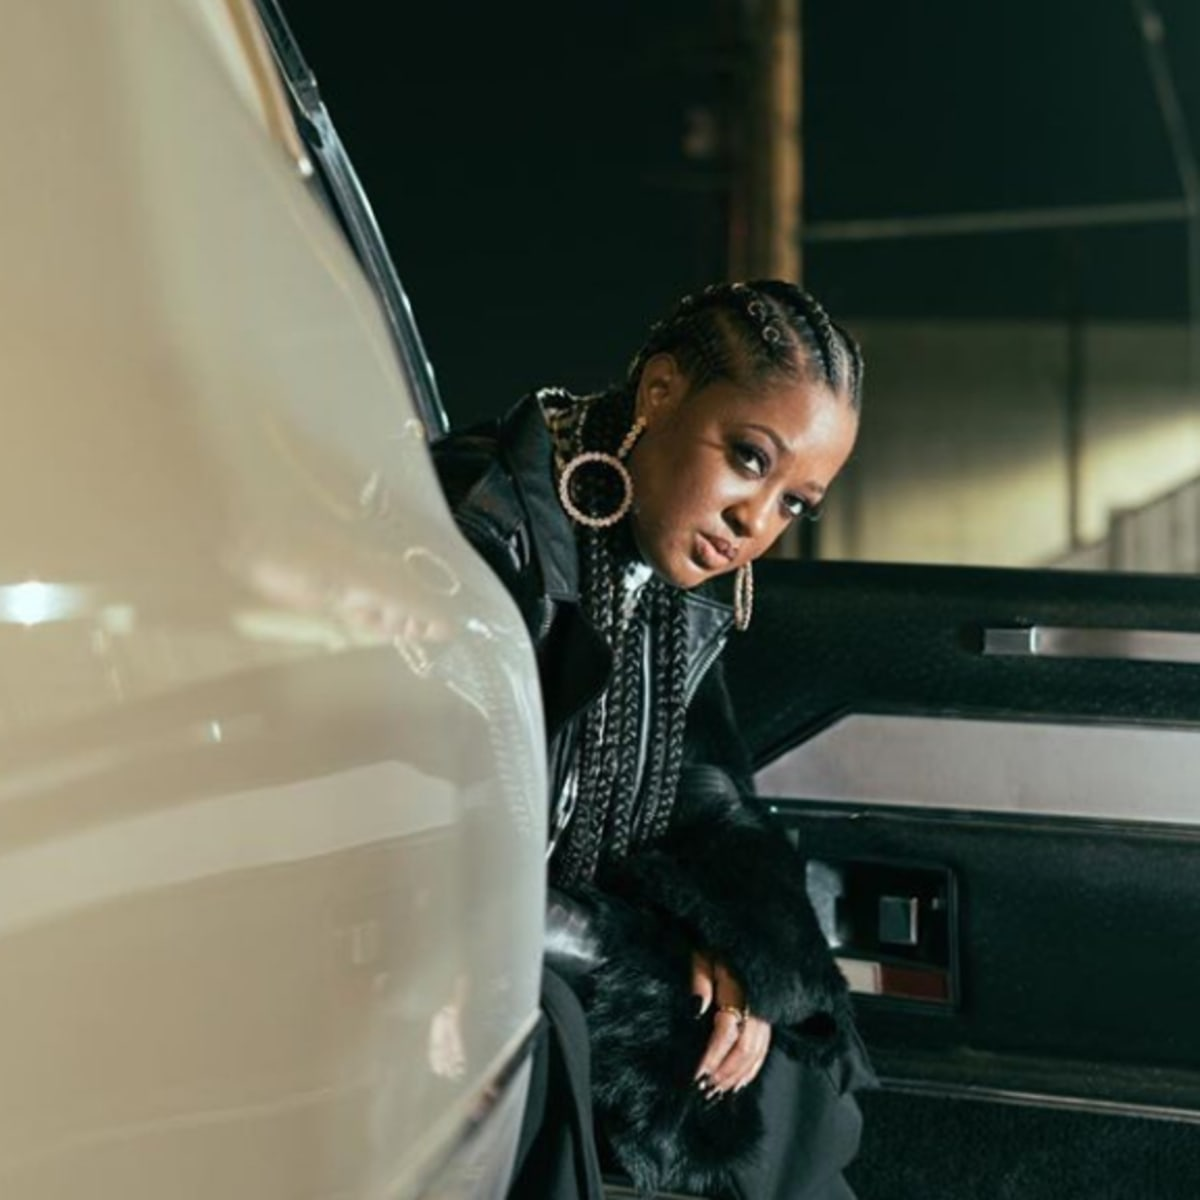 Rapsody's 'Eve': The Making Of with Eric G - DJBooth